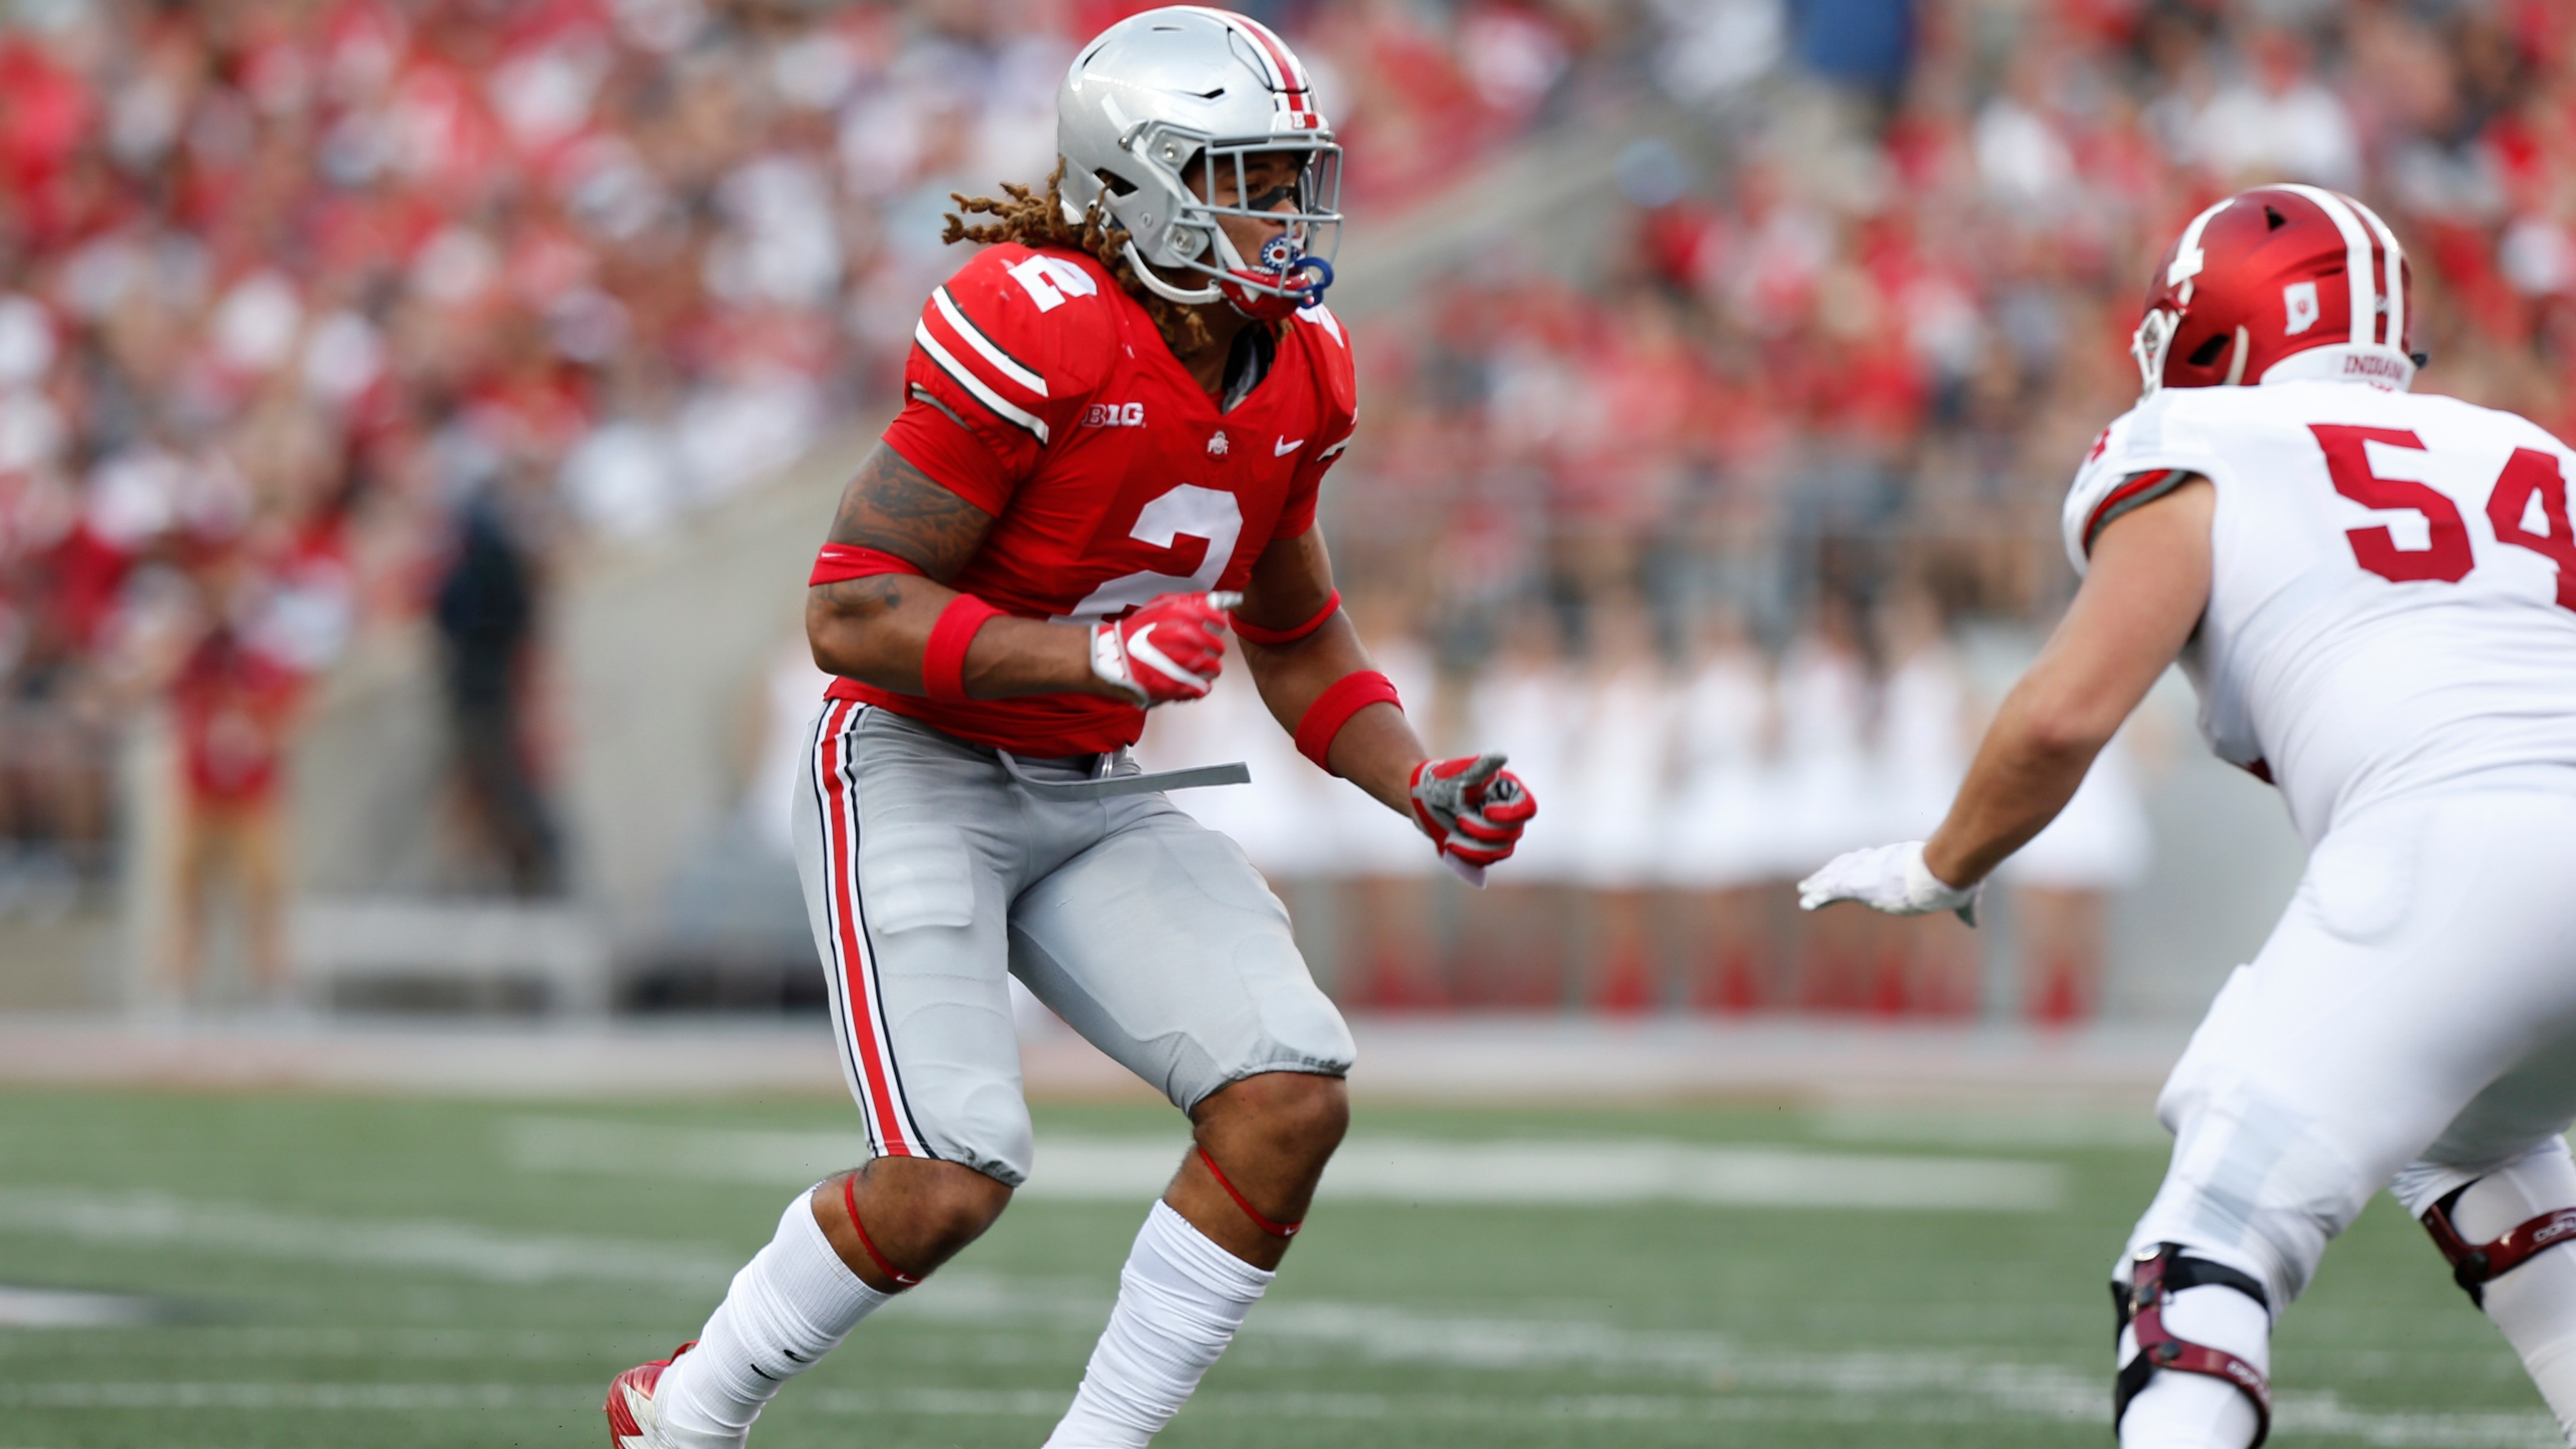 2020 NFL Draft odds: Teams, not players, key to early prop